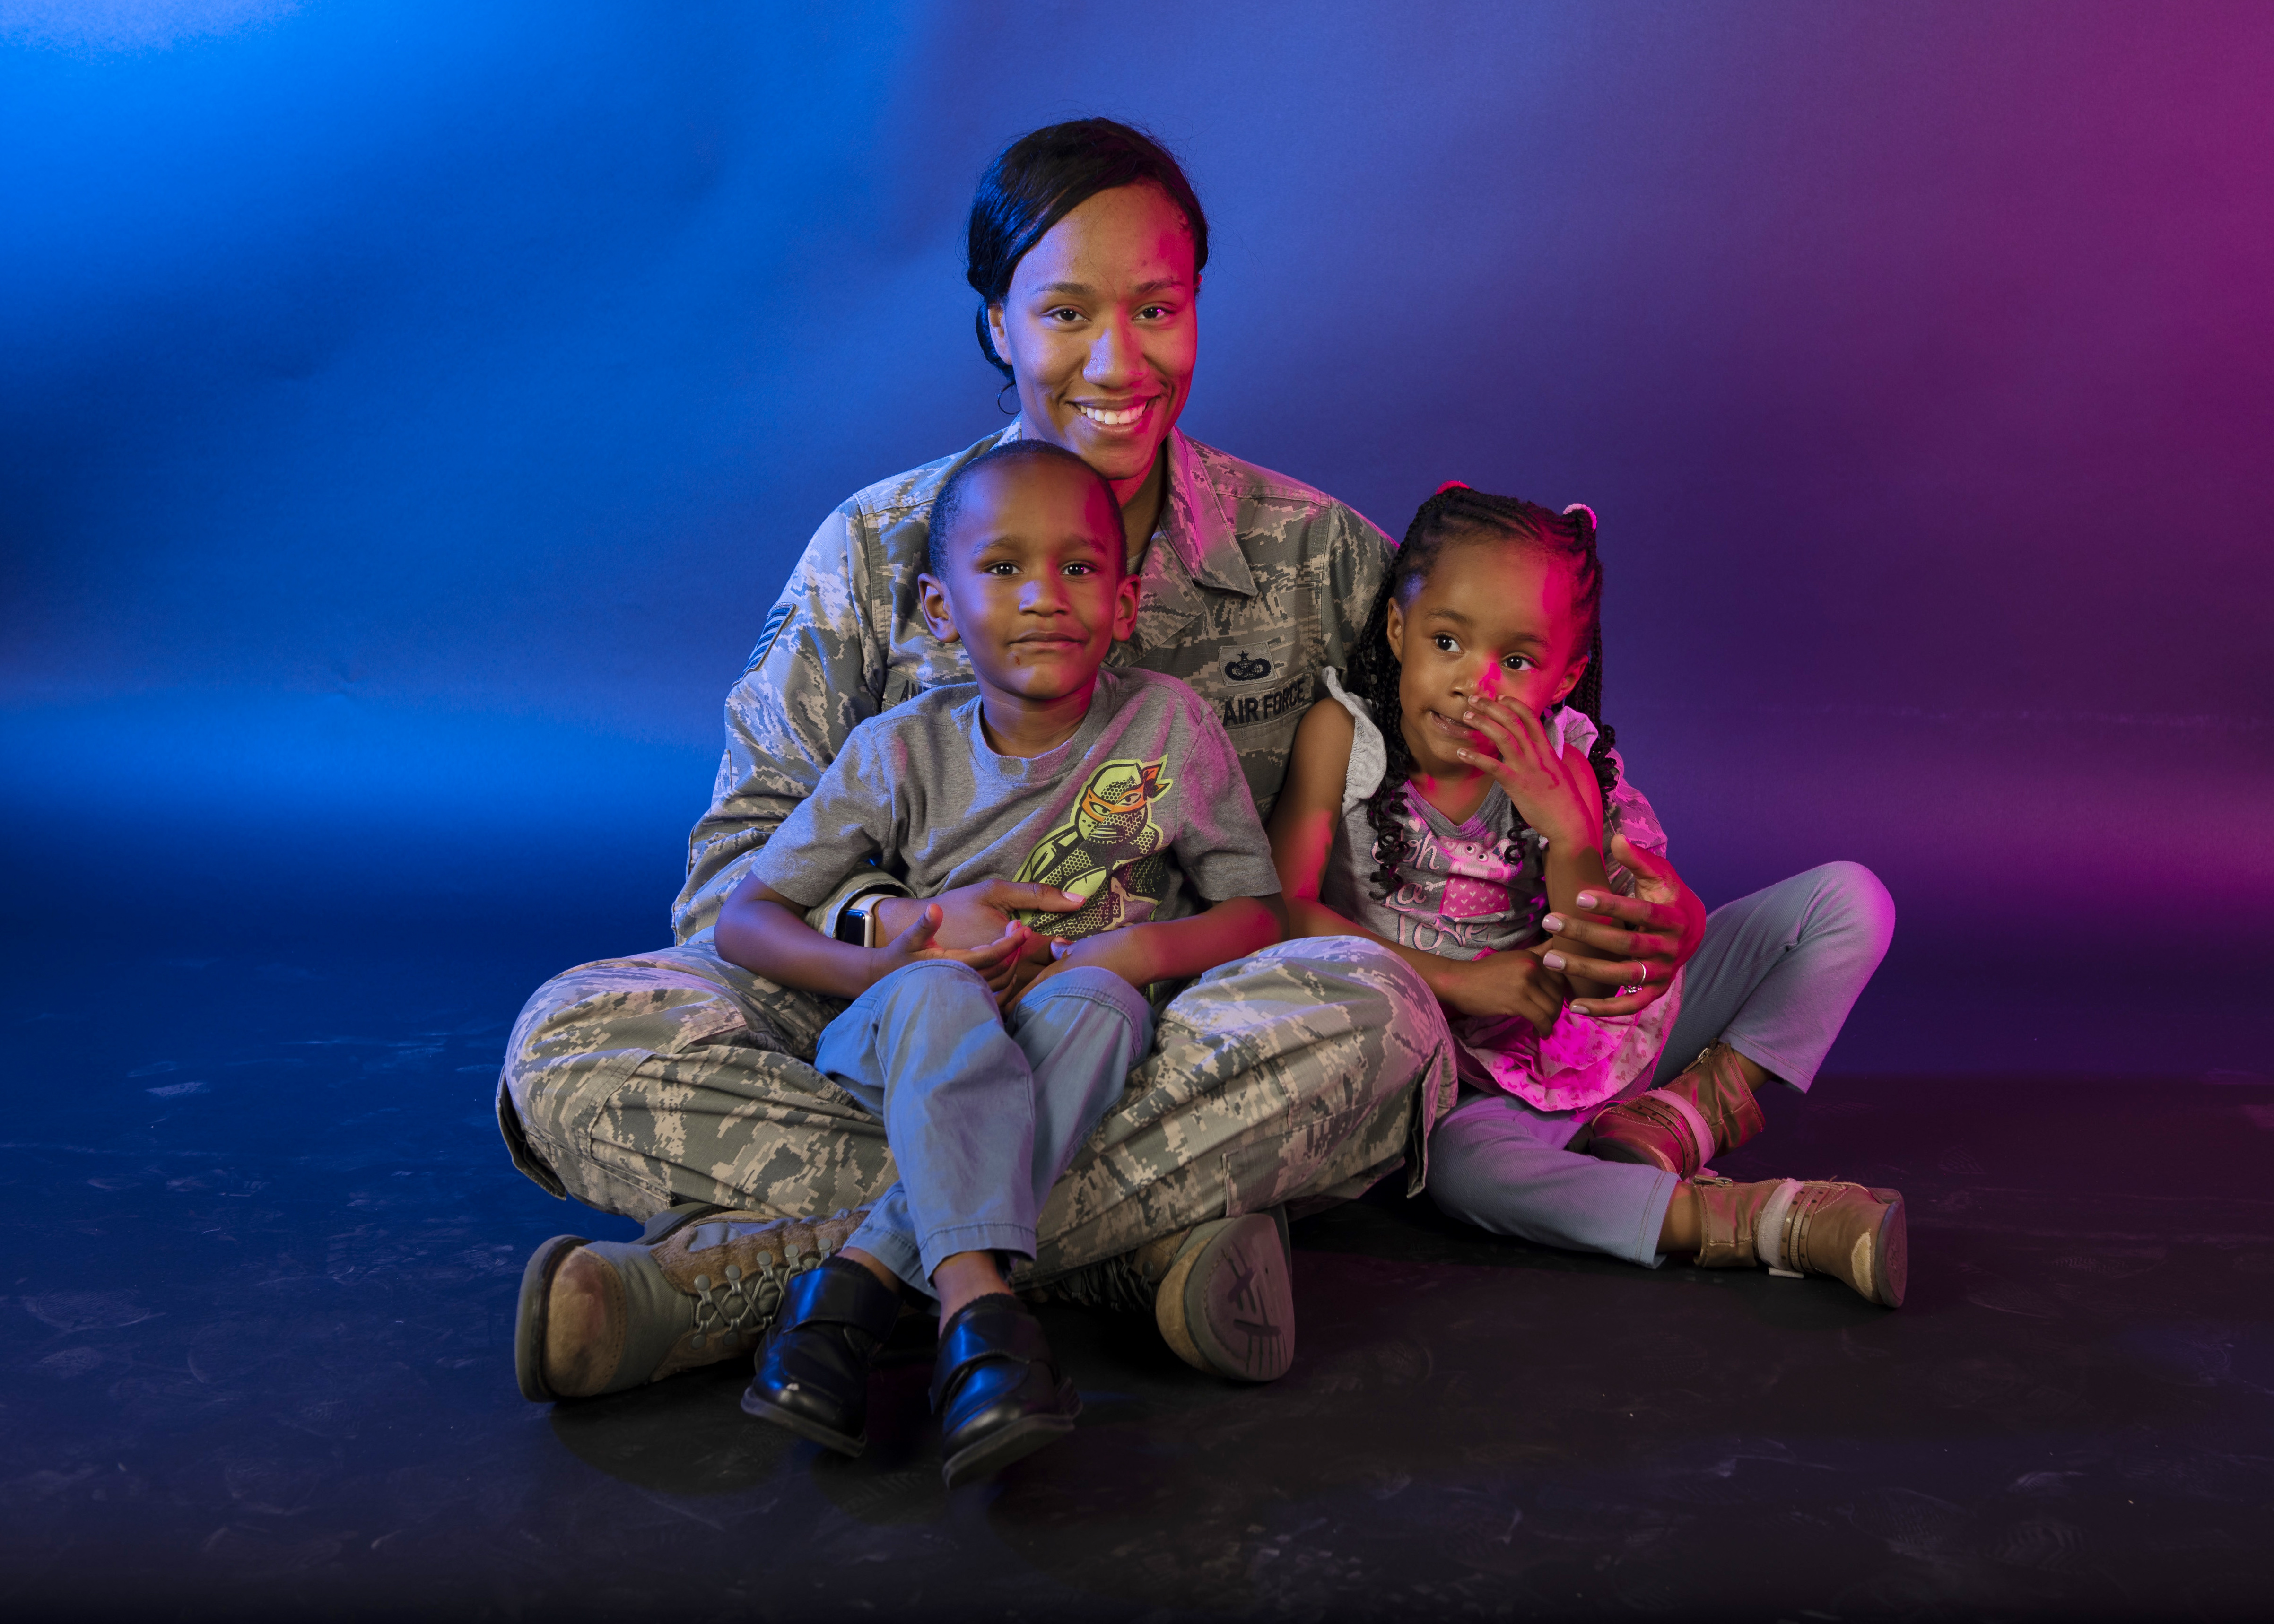 Month of the Military Child, recognizing your service and sacrifice